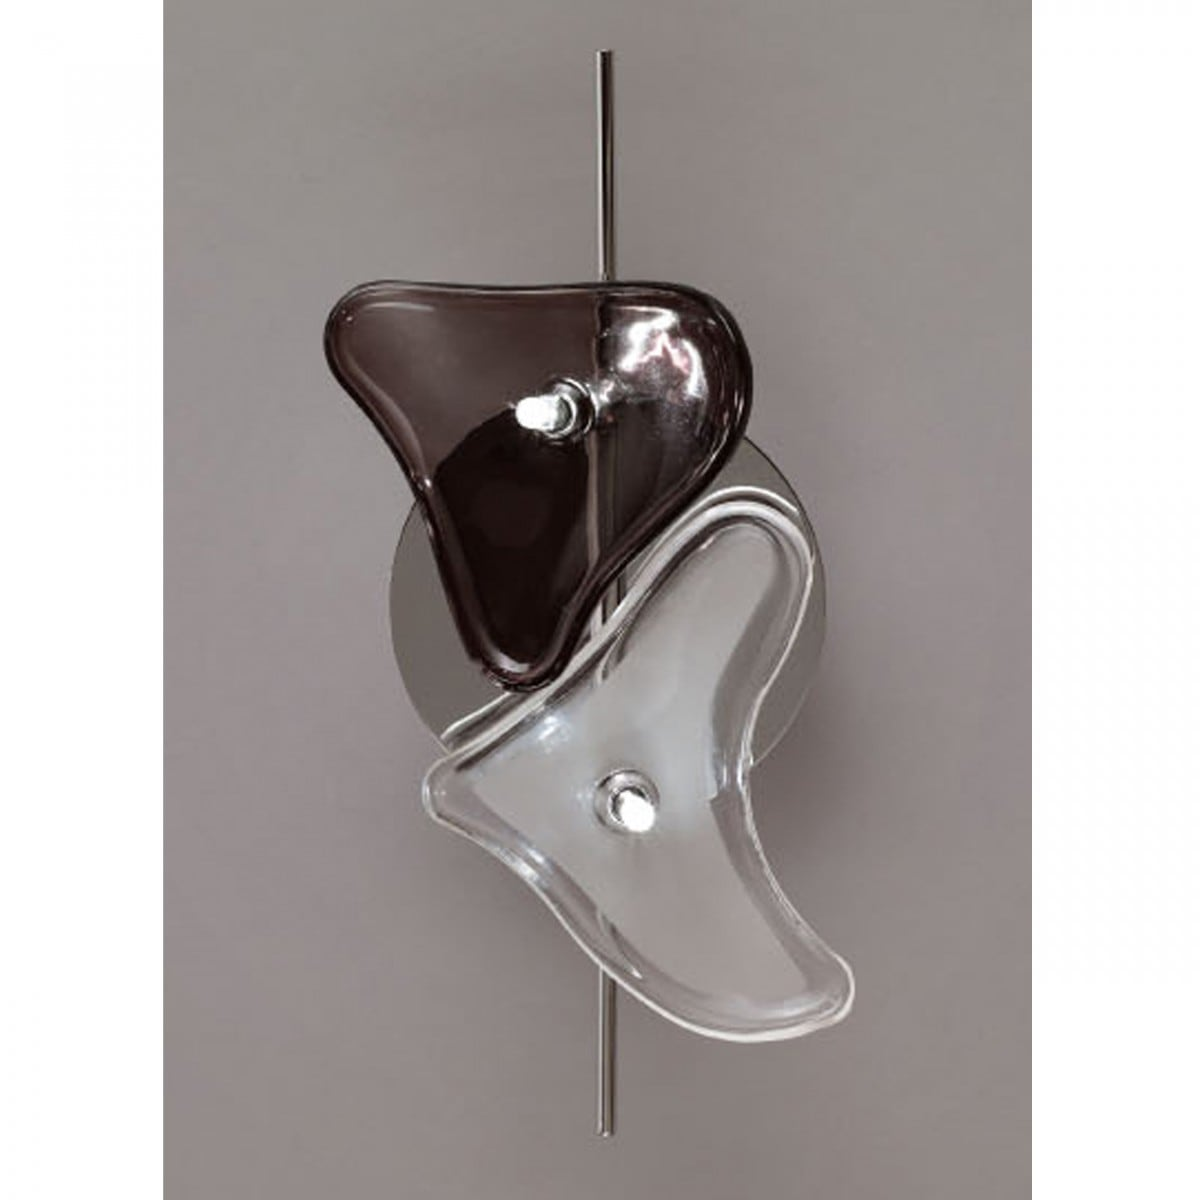 Otto 2 wall lamp black and white